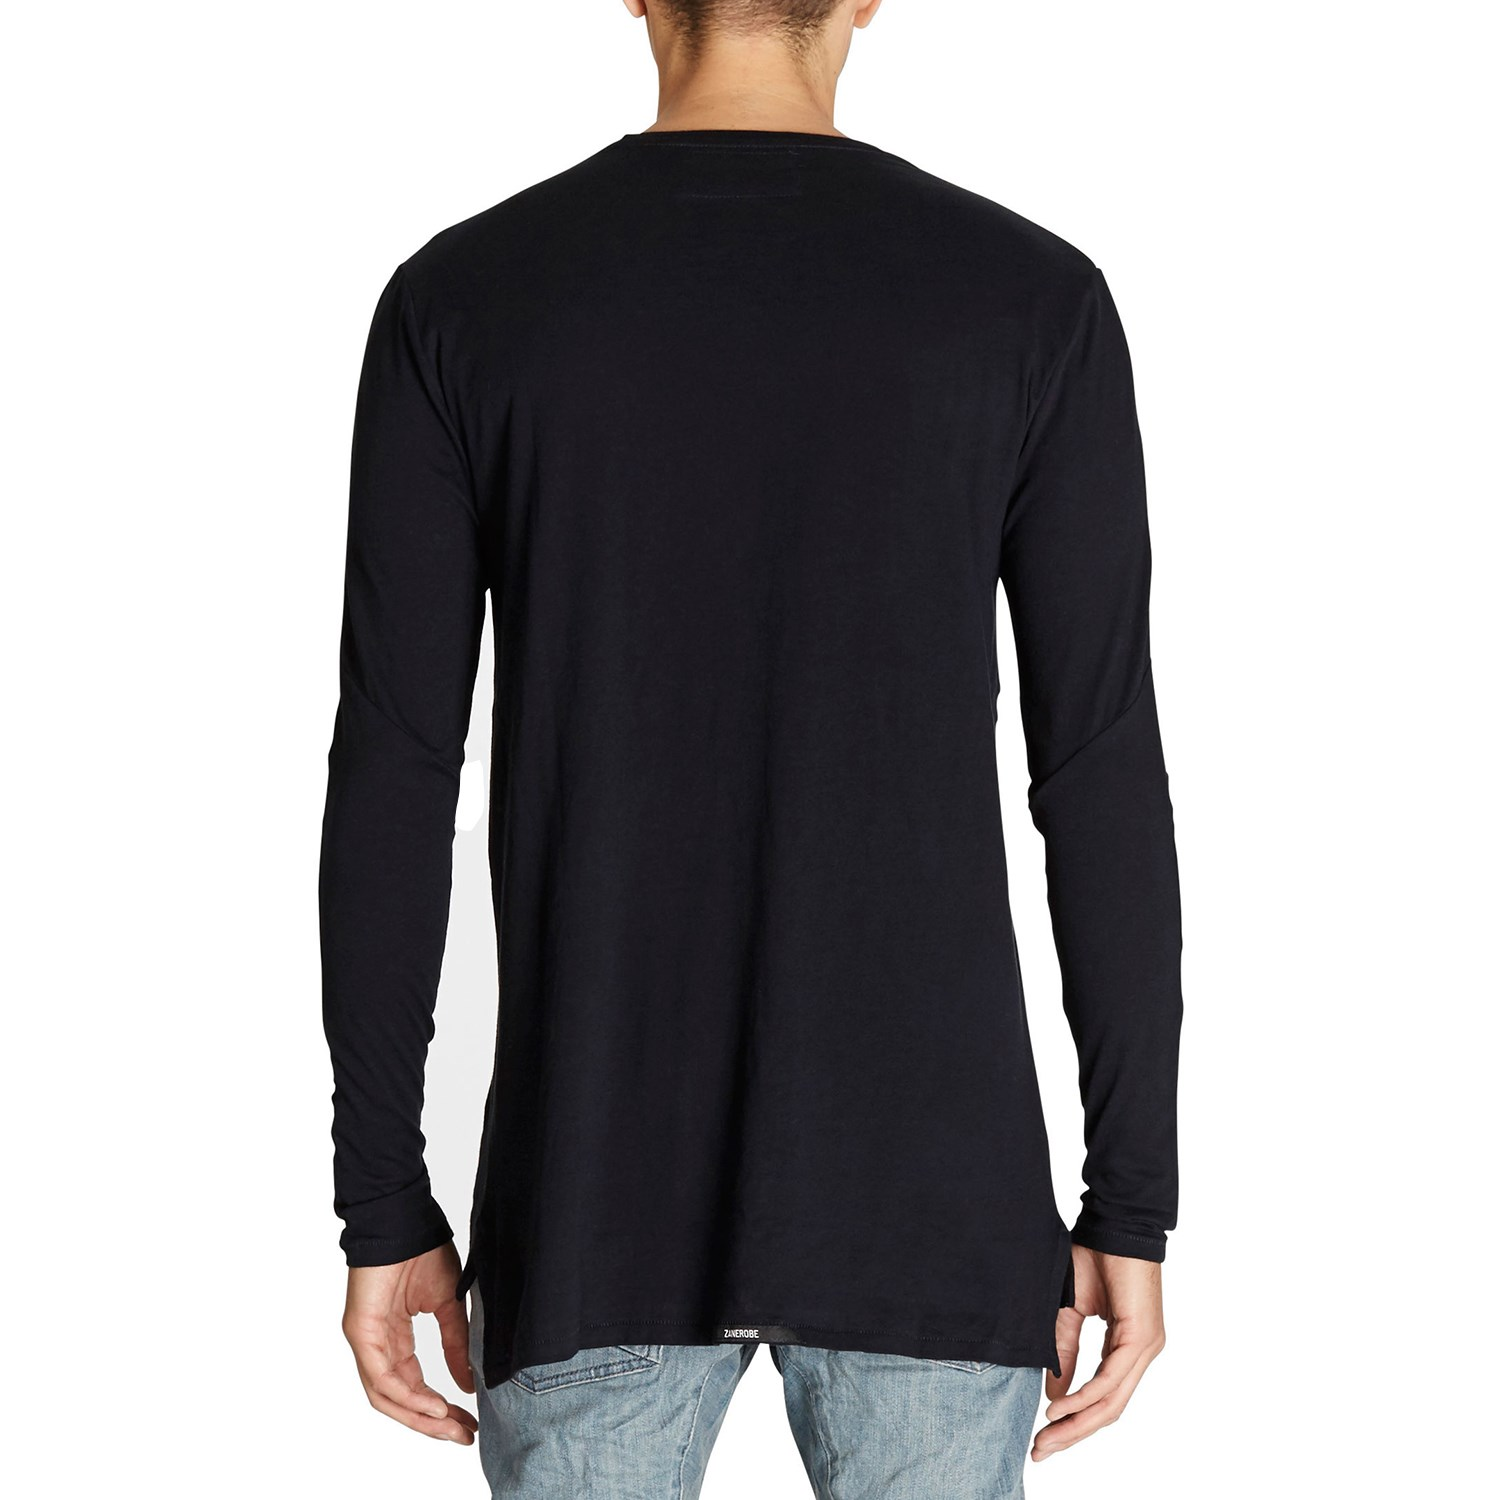 t shirt with long back a3837874521